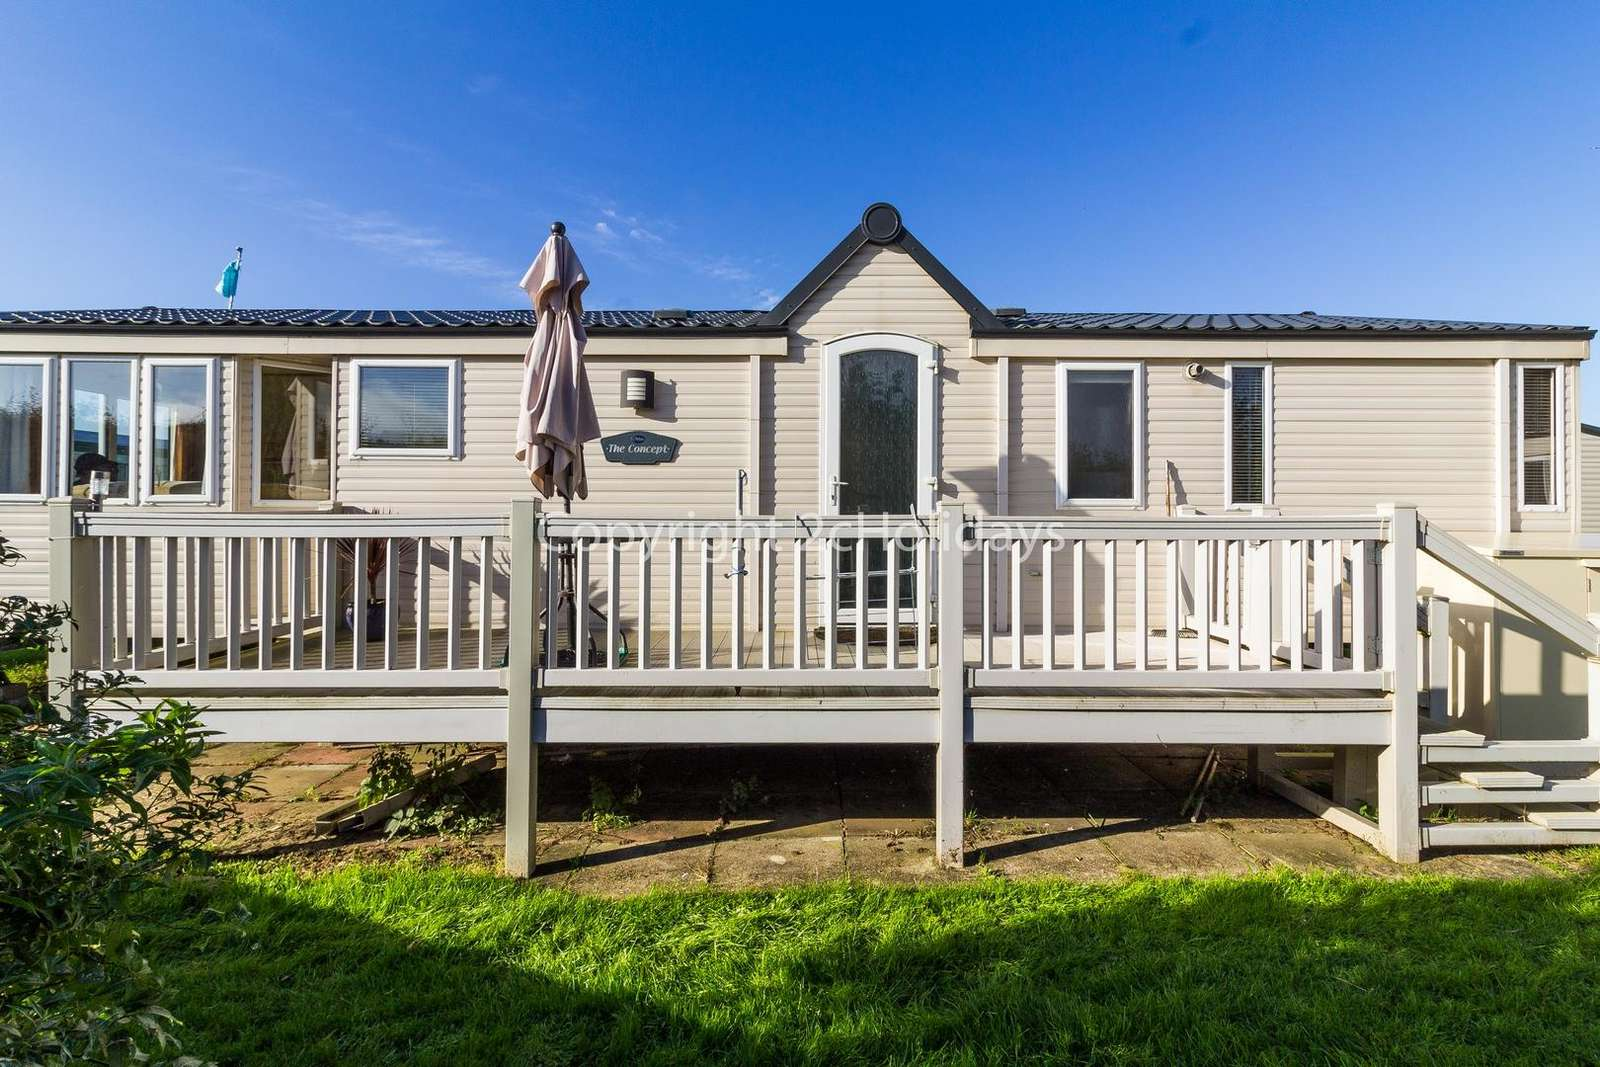 You can relax in the sunshine with decking and outside furniture!